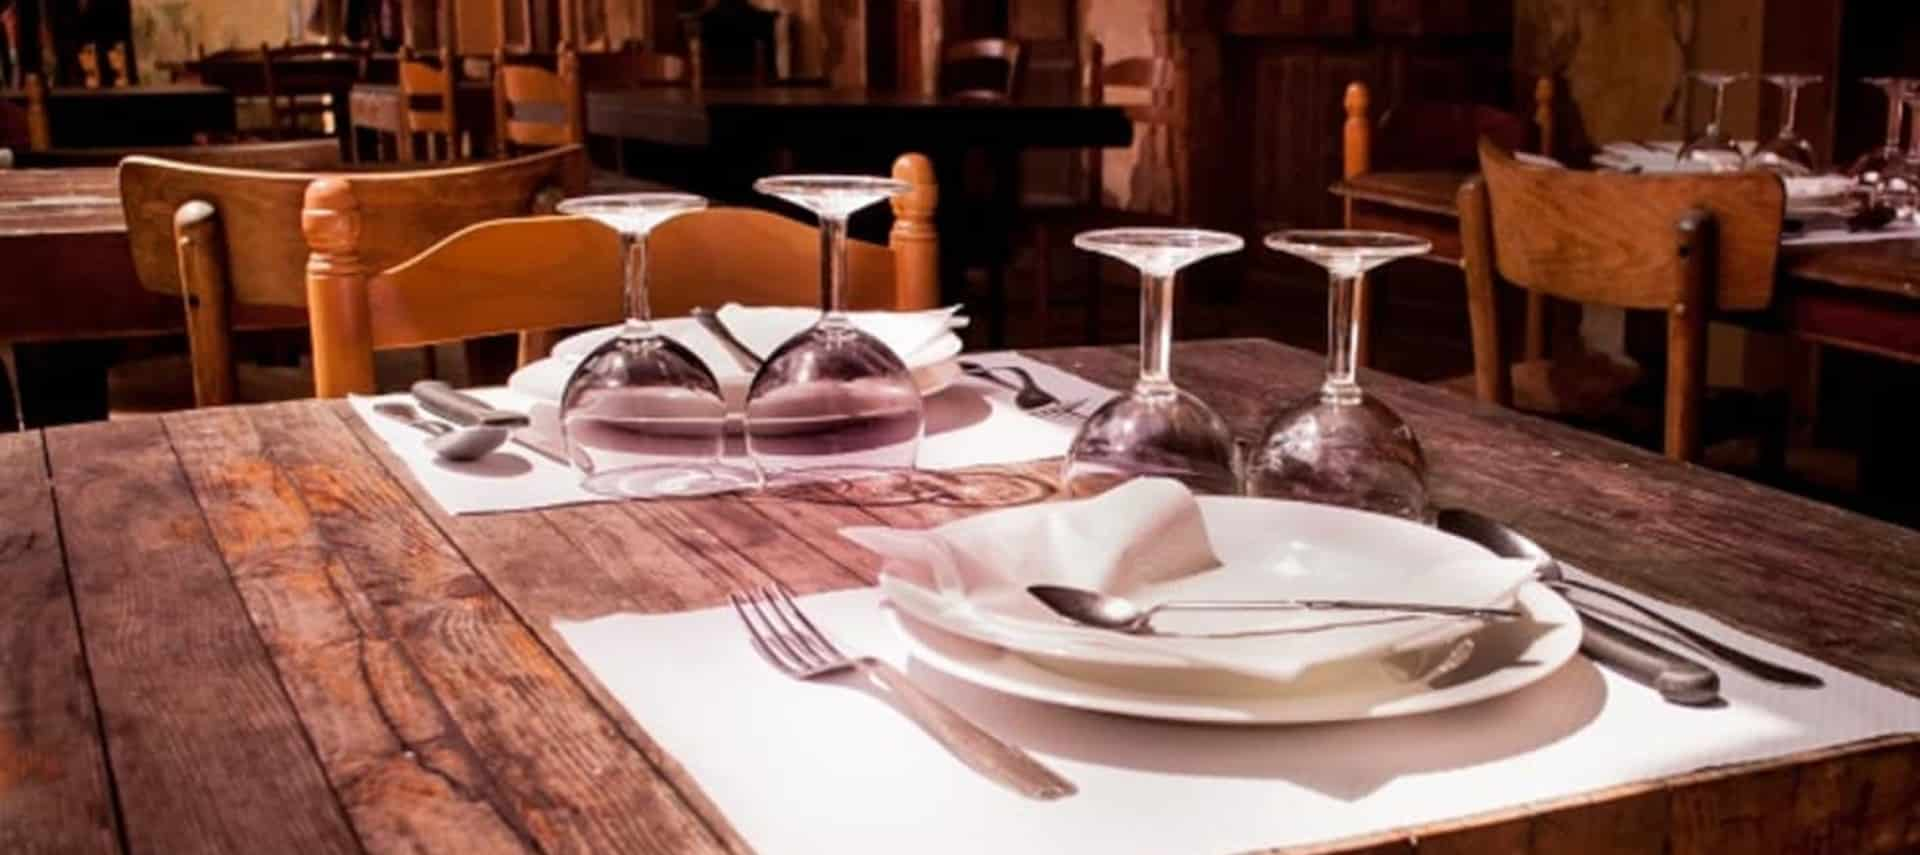 A rustic brown table in a restaurant with white linens, white plates, and clear glasses set for two.